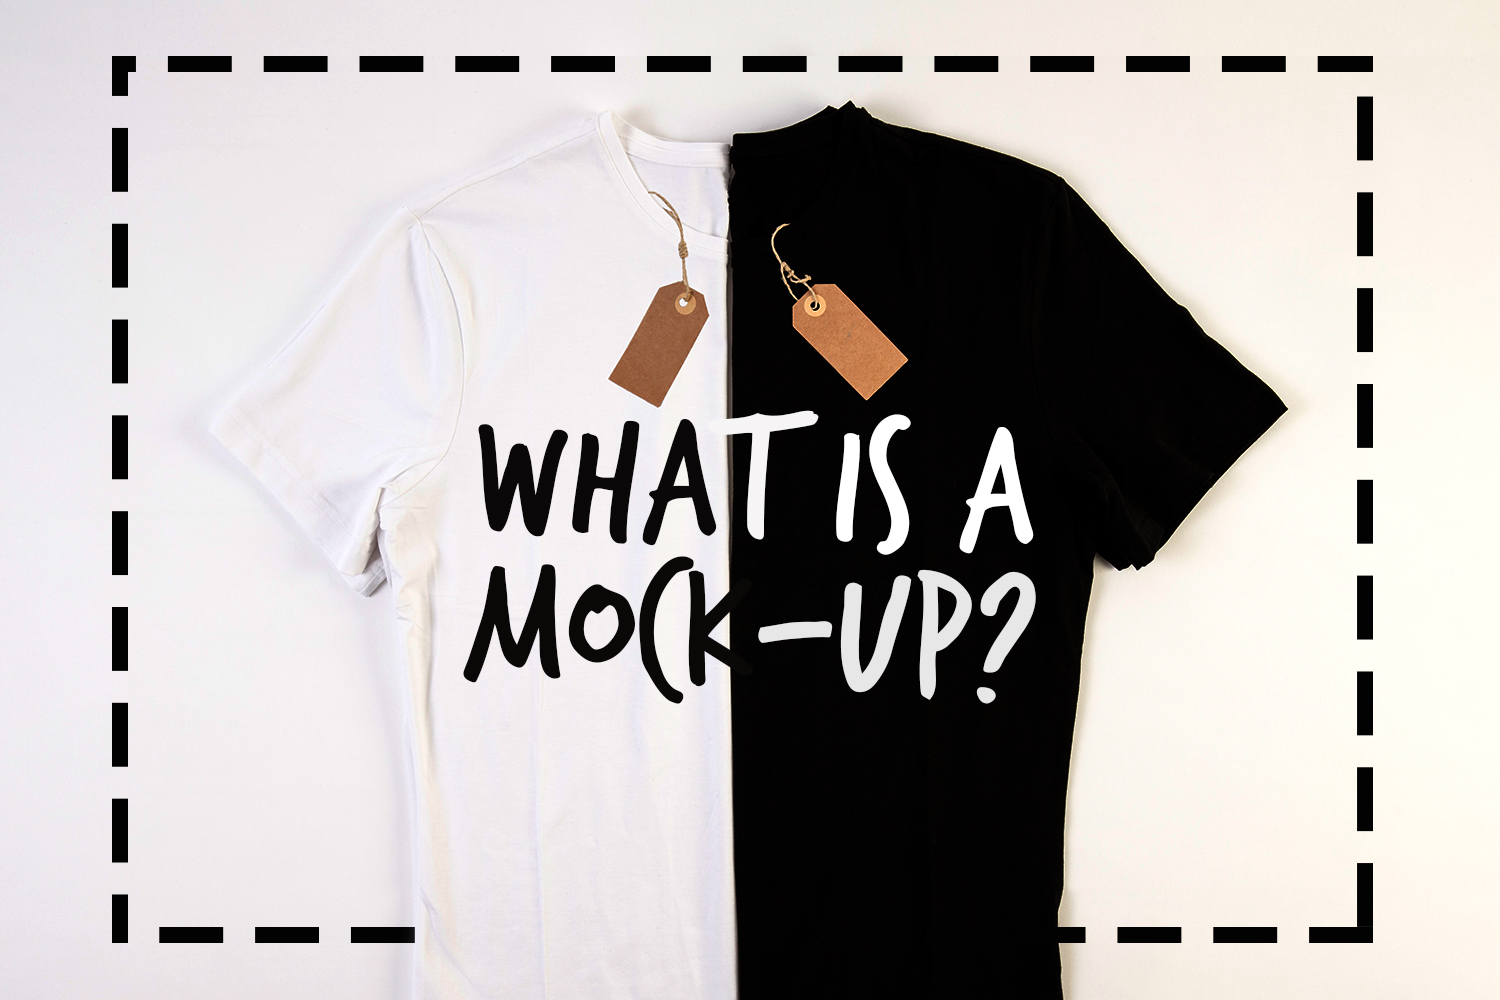 What is a Mock-up?